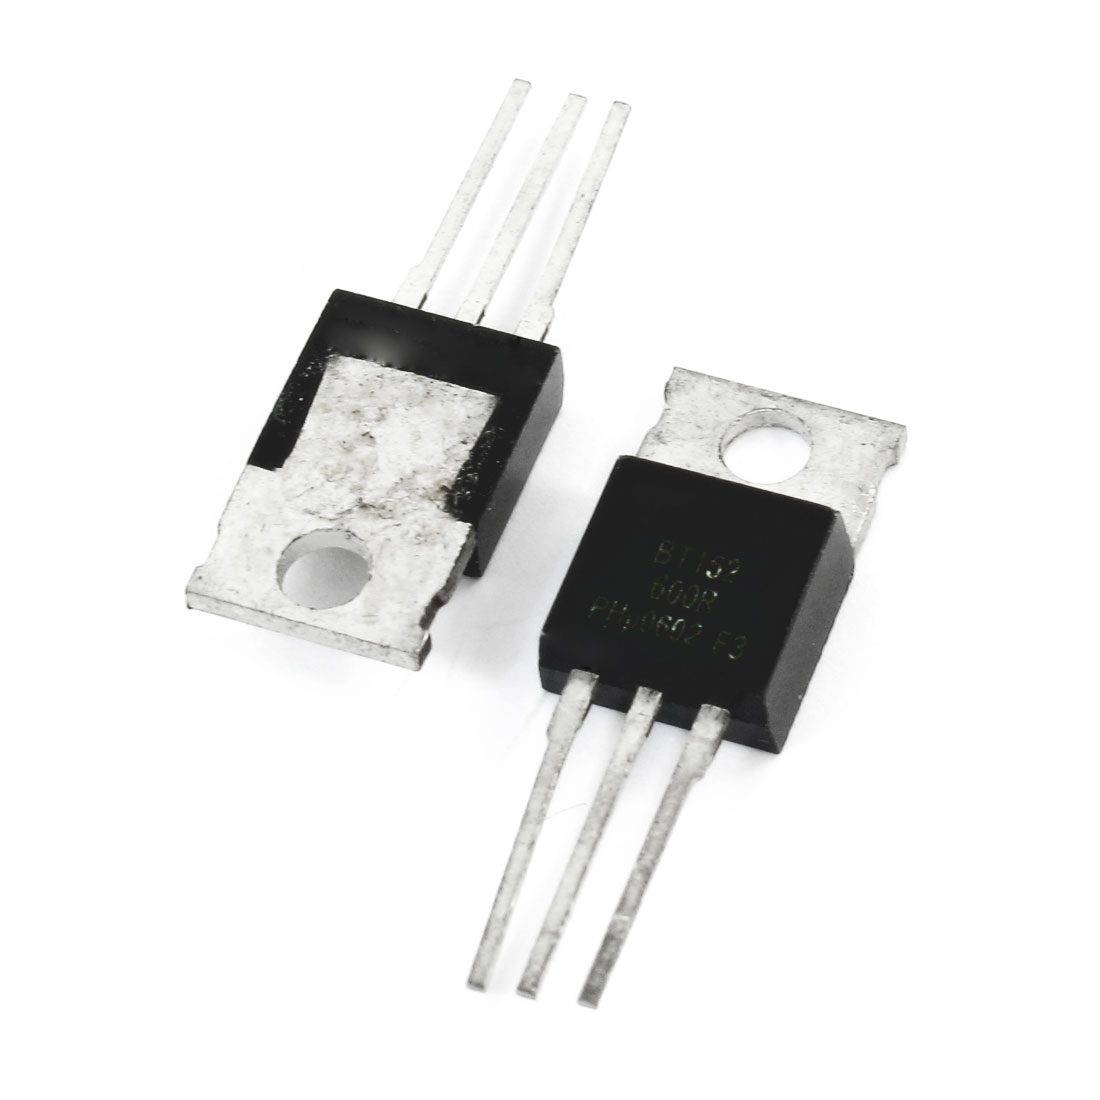 2 Pcs BT152-600R 650V 13Amp High Switching Speed Silicon Transistor